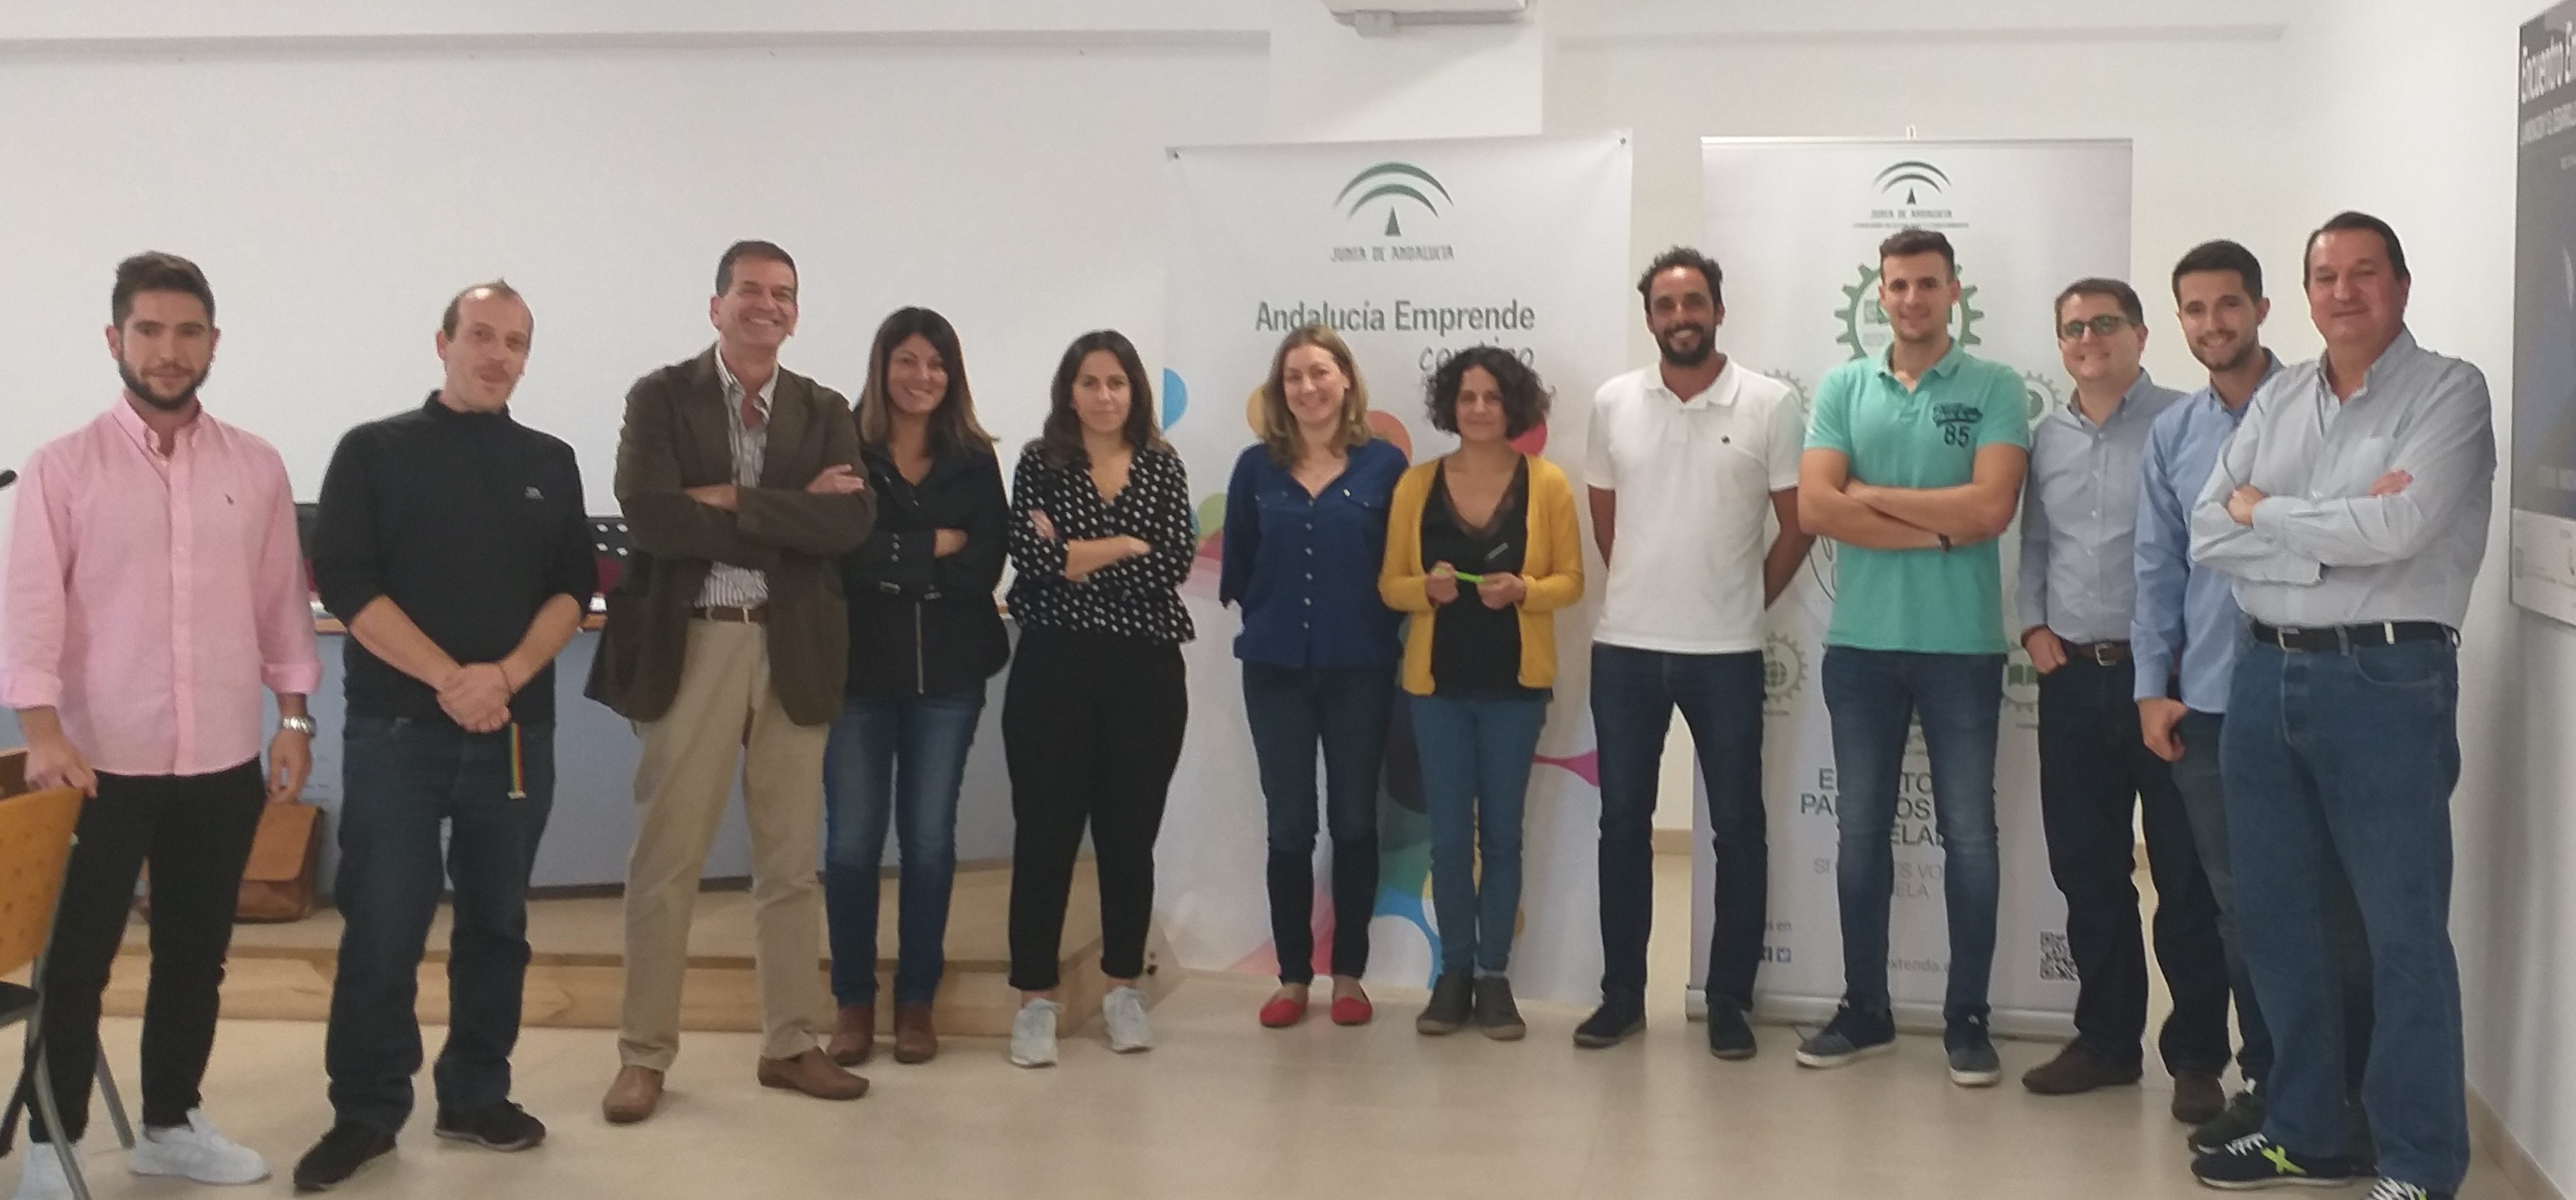 FSVP (Foreign Supplier Verification Programmes) FSPCA Course held in Almería